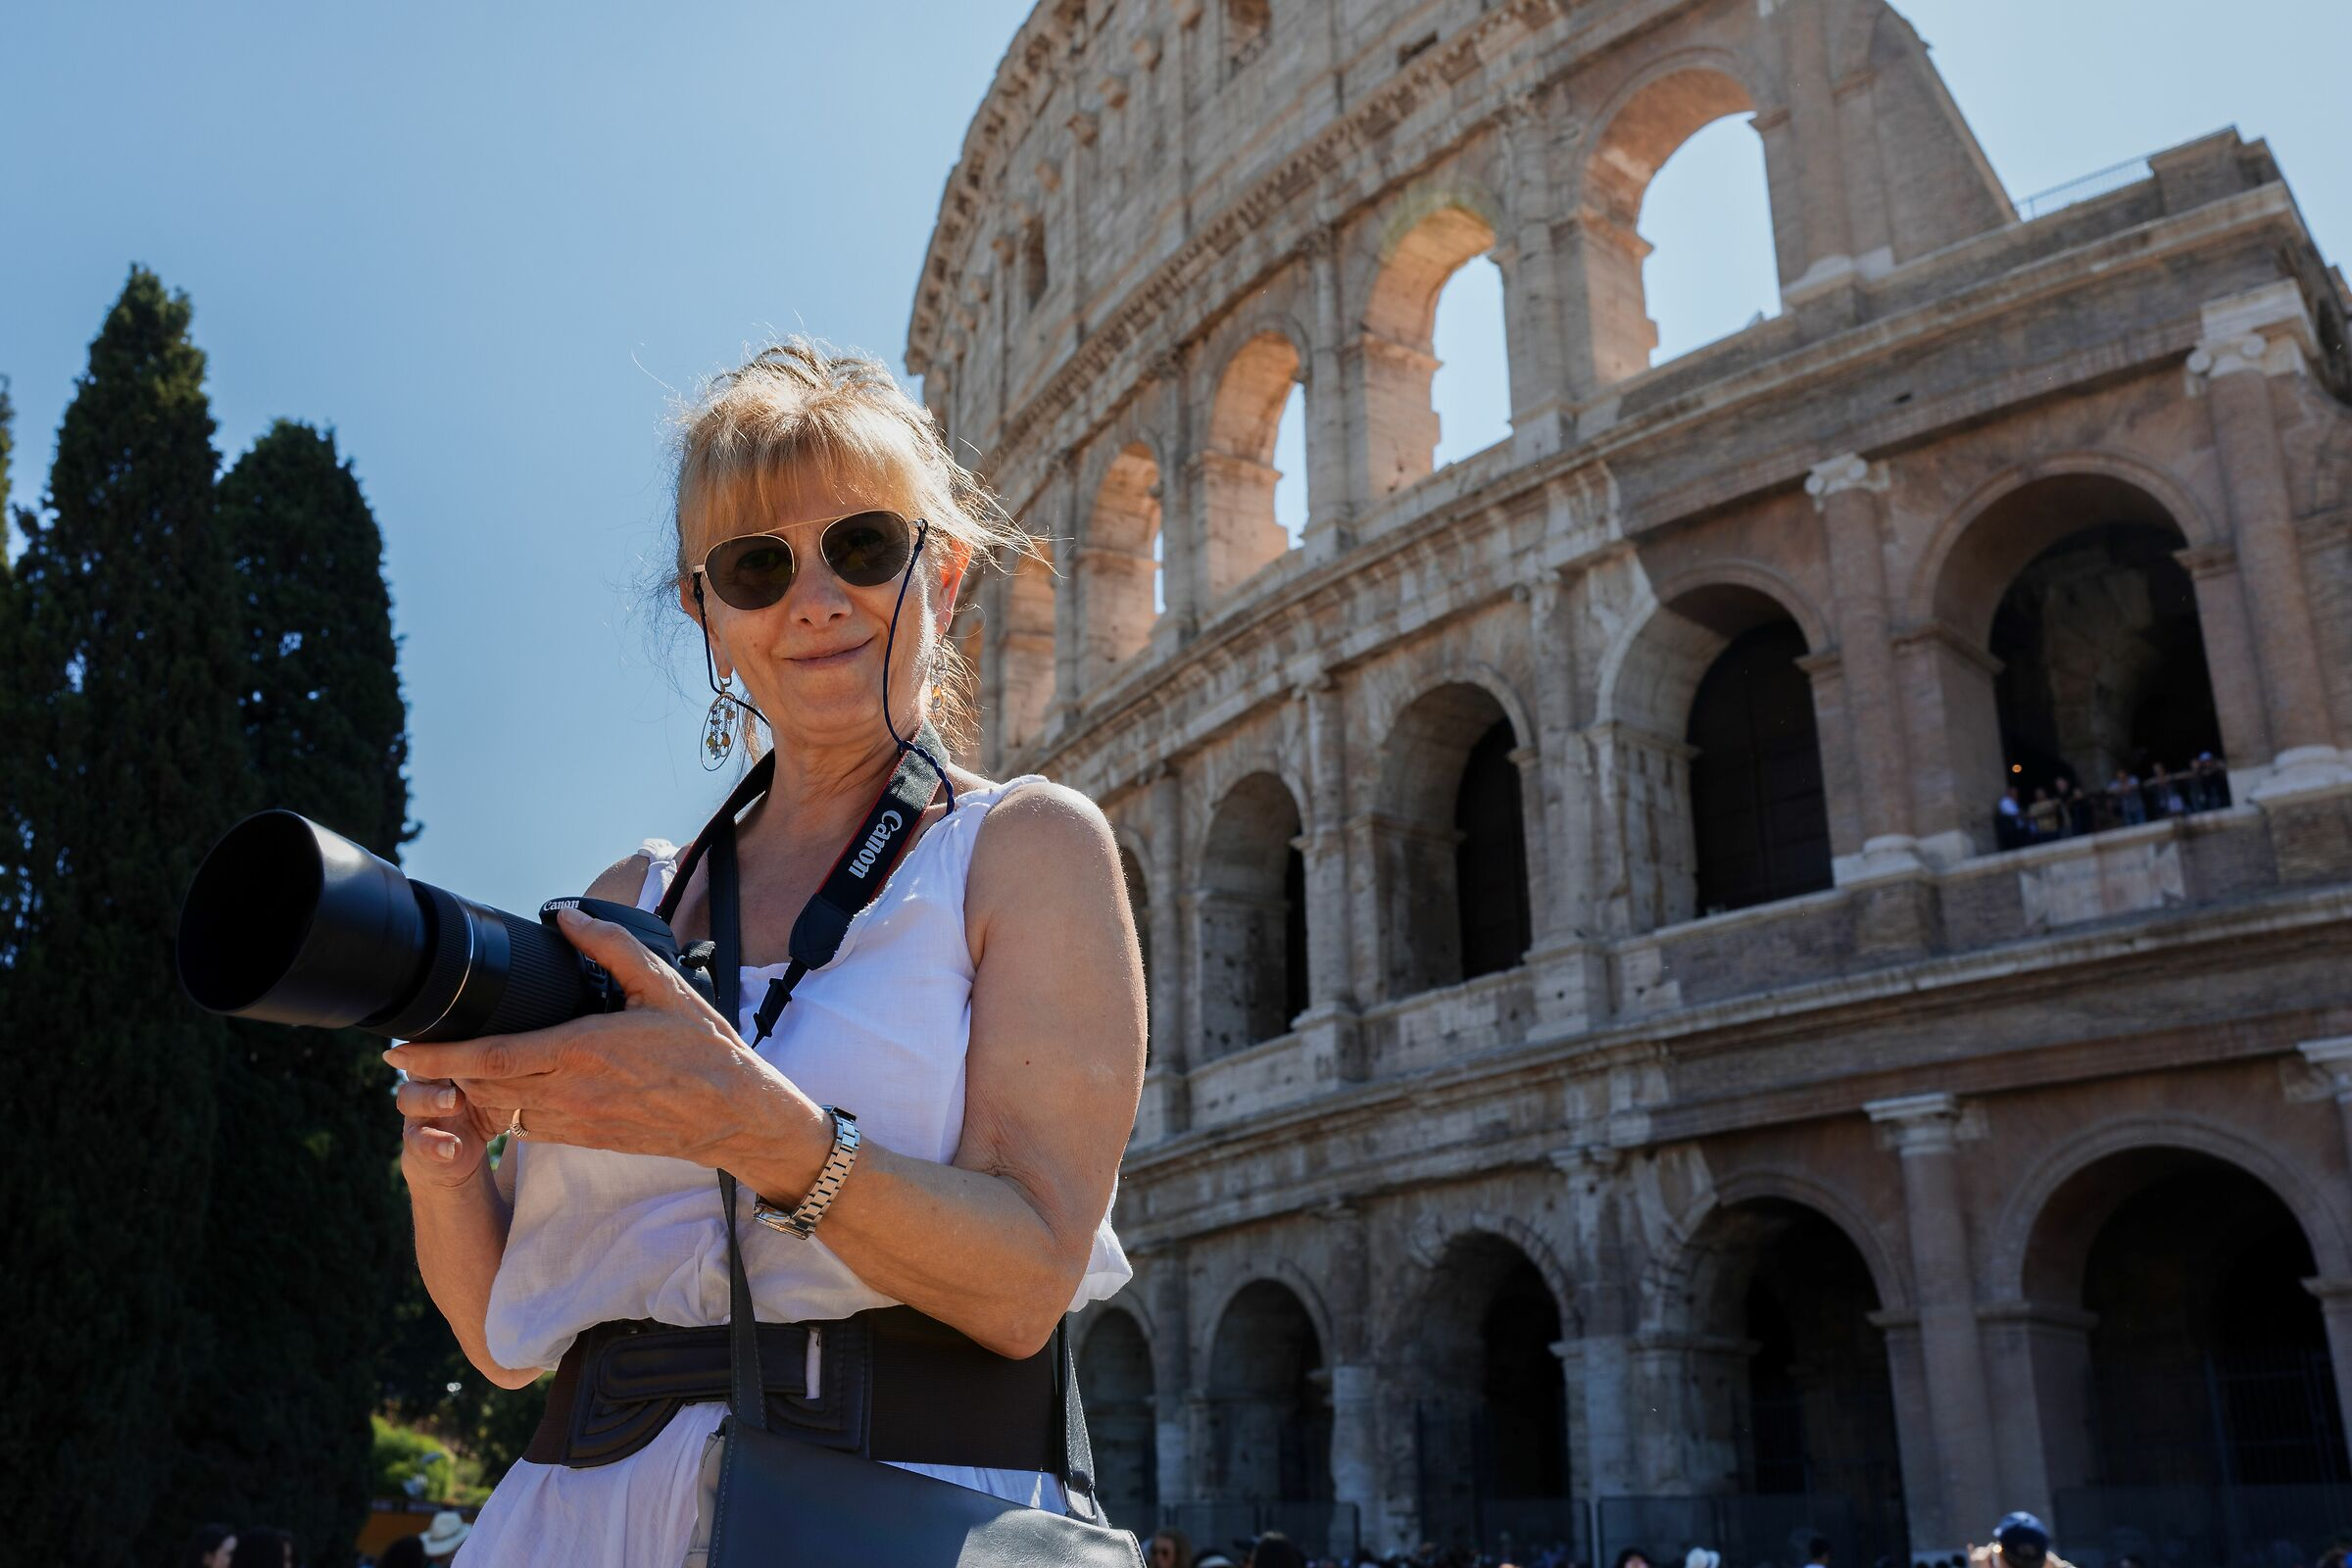 In the shadow of the Colosseum...